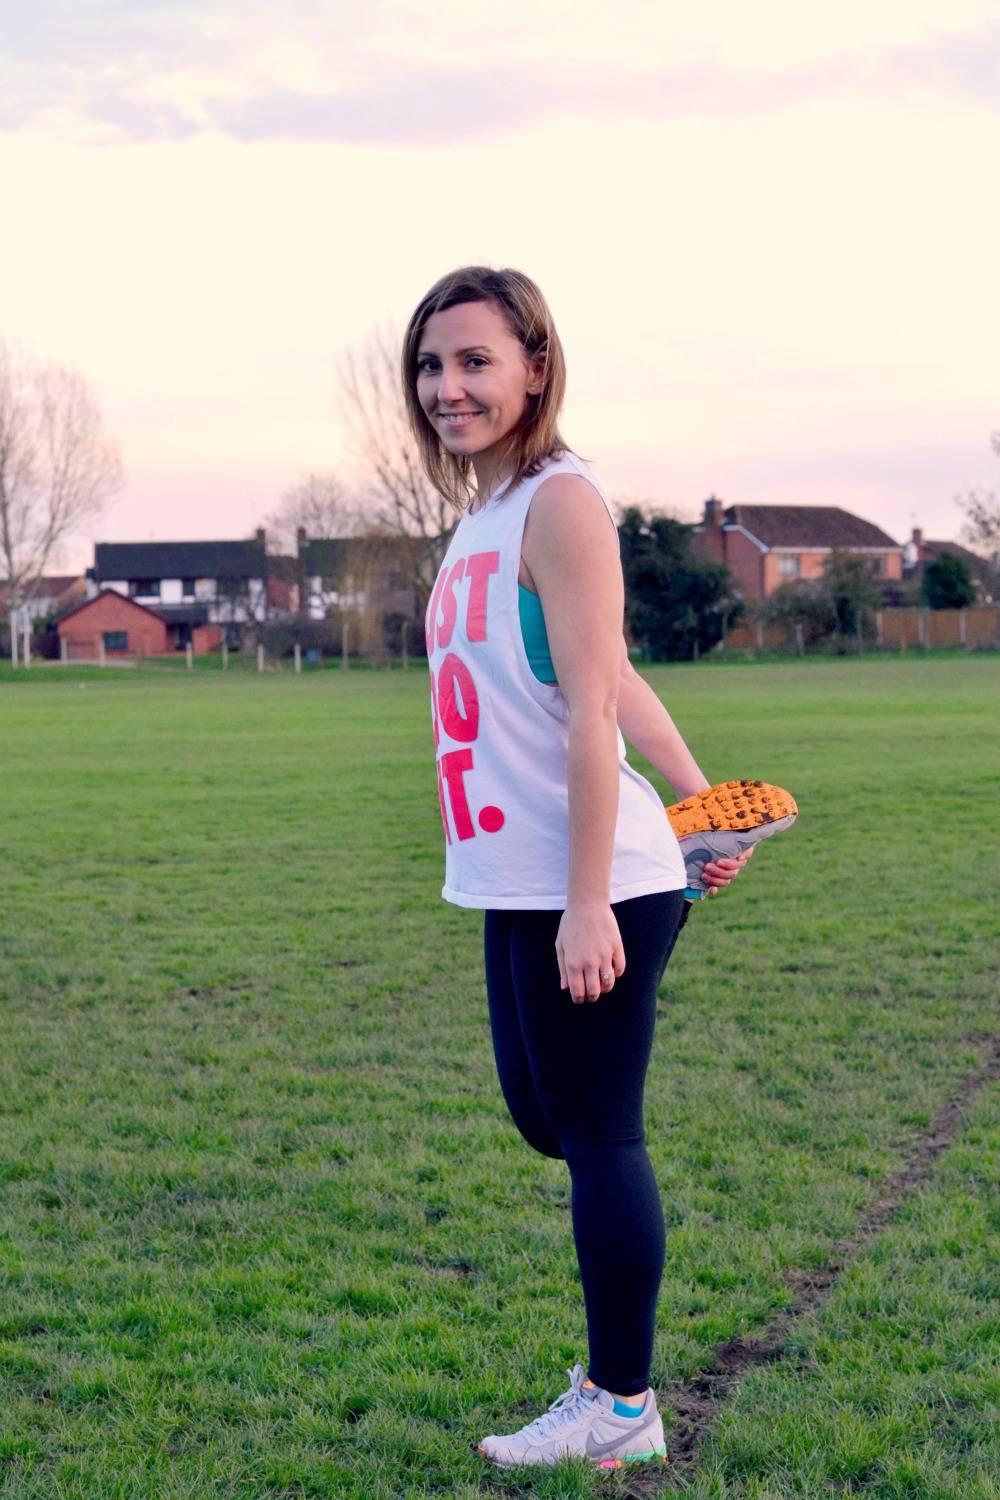 Percy Pigs for Breakfast | Health & Fitness and Starting Over